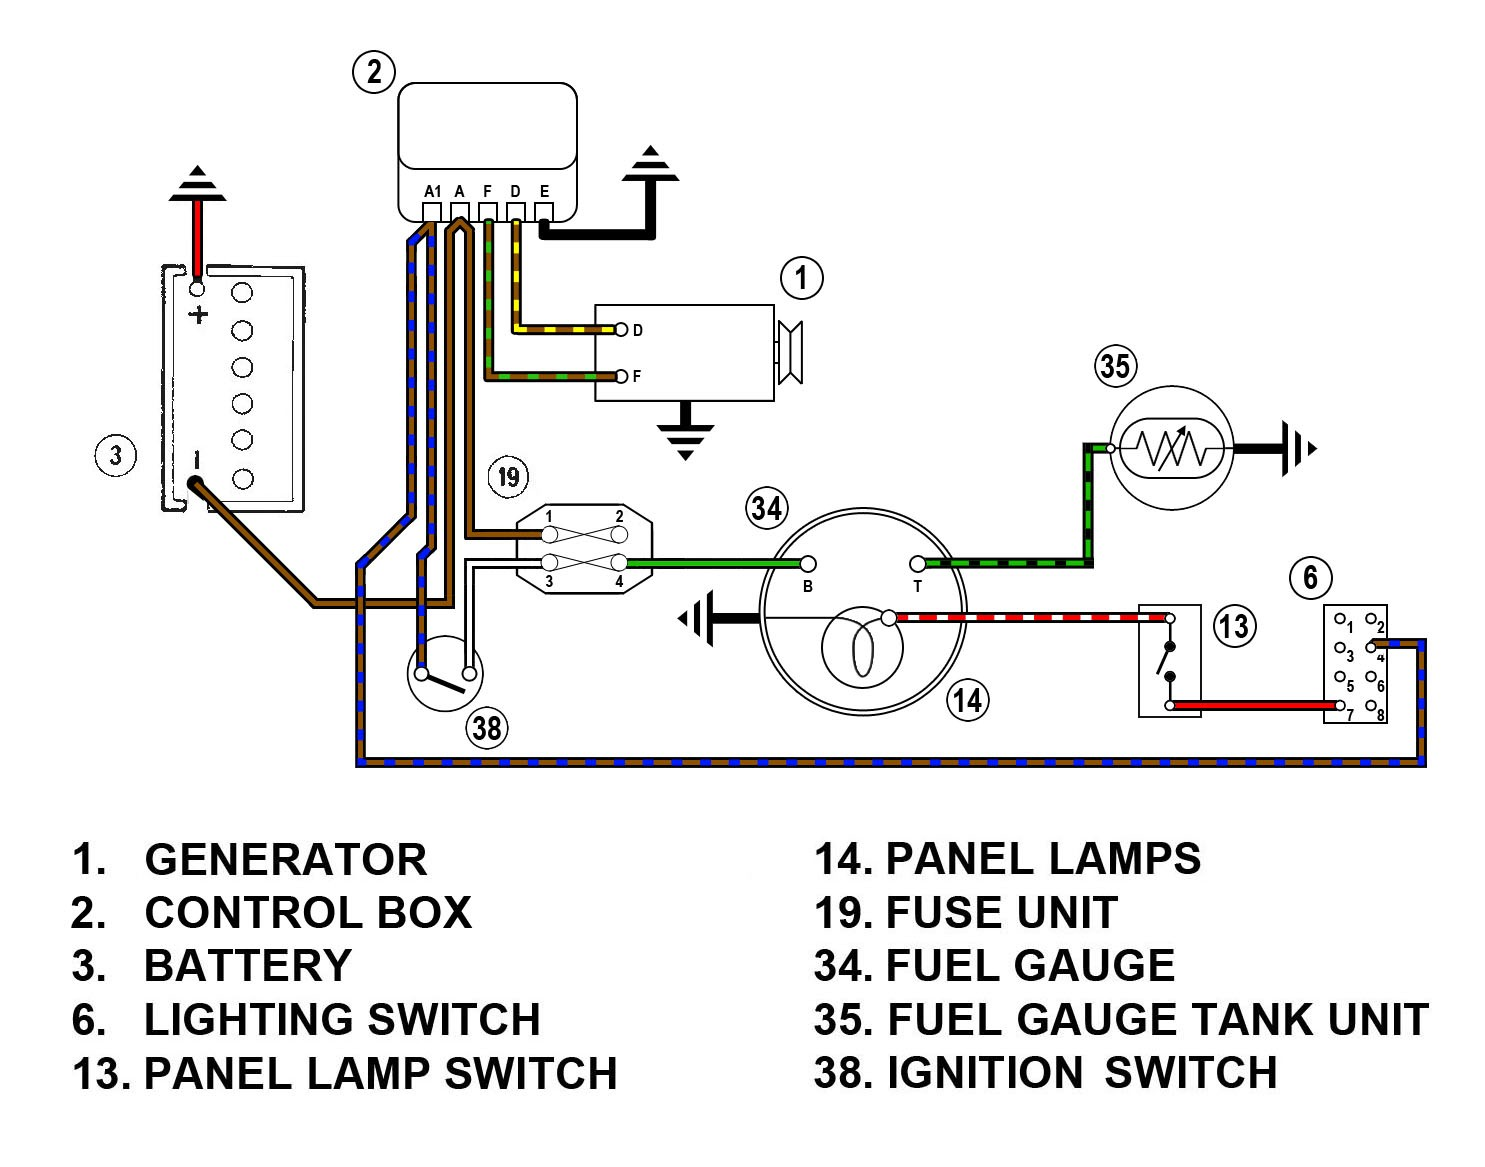 S10 Wiring Diagram For Gauges - Diagram Schematic on s10 driveshaft diagram, s10 starter wiring, 96 s10 wiring diagram, s10 radio wiring diagram, s10 headlight diagram, 1988 s10 wiring diagram, s10 wiring diagram for gauges, 1985 s10 wiring diagram, 1993 s10 wiring diagram, 1987 f150 wiring diagram, s10 ignition parts, 93 s10 wiring diagram, s10 ignition timing, s10 wiring harness diagram, s10 fuel diagram, 87 s10 wiring diagram, s10 lighting wiring diagram, s10 wiring diagram pdf, s10 engine diagram, s10 trailer wiring diagram,